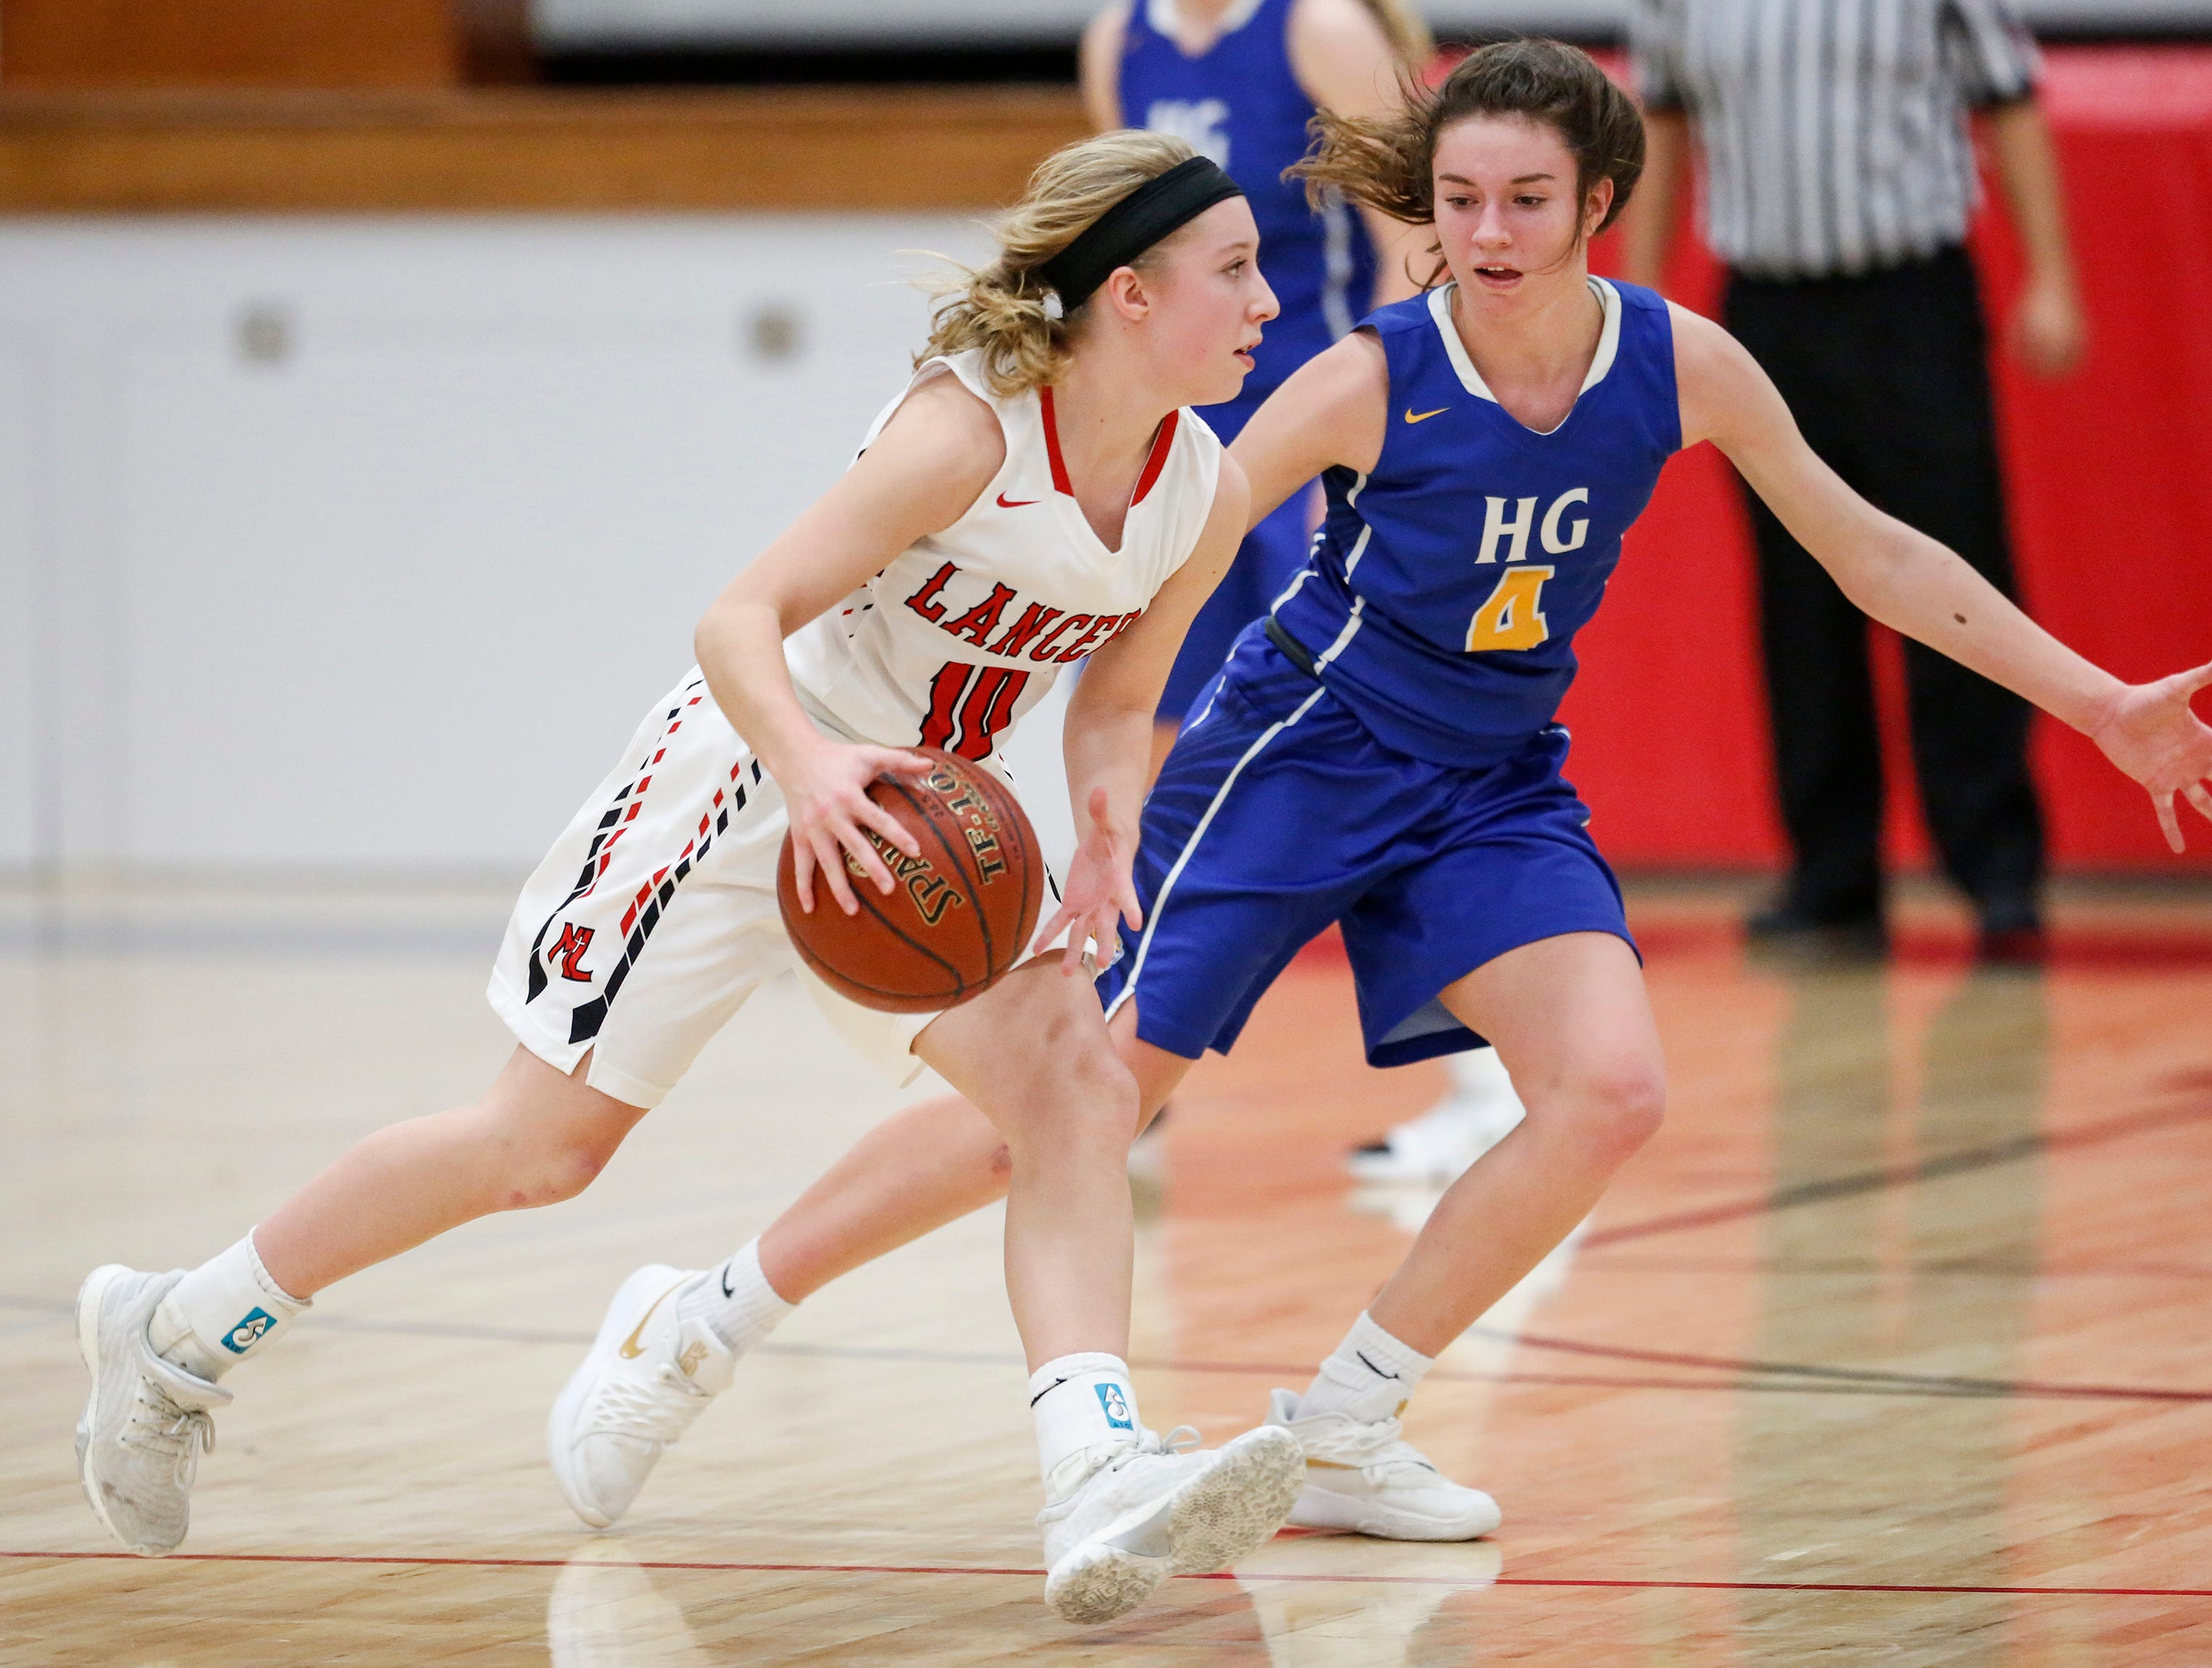 Manitowoc Lutheran's Mady Hurkmans against Howards Grove's Mackenzie Holzwart at Manitowoc Lutheran High School Tuesday, December 18, 2018, in Manitowoc, Wis. Joshua Clark/USA TODAY NETWORK-Wisconsin